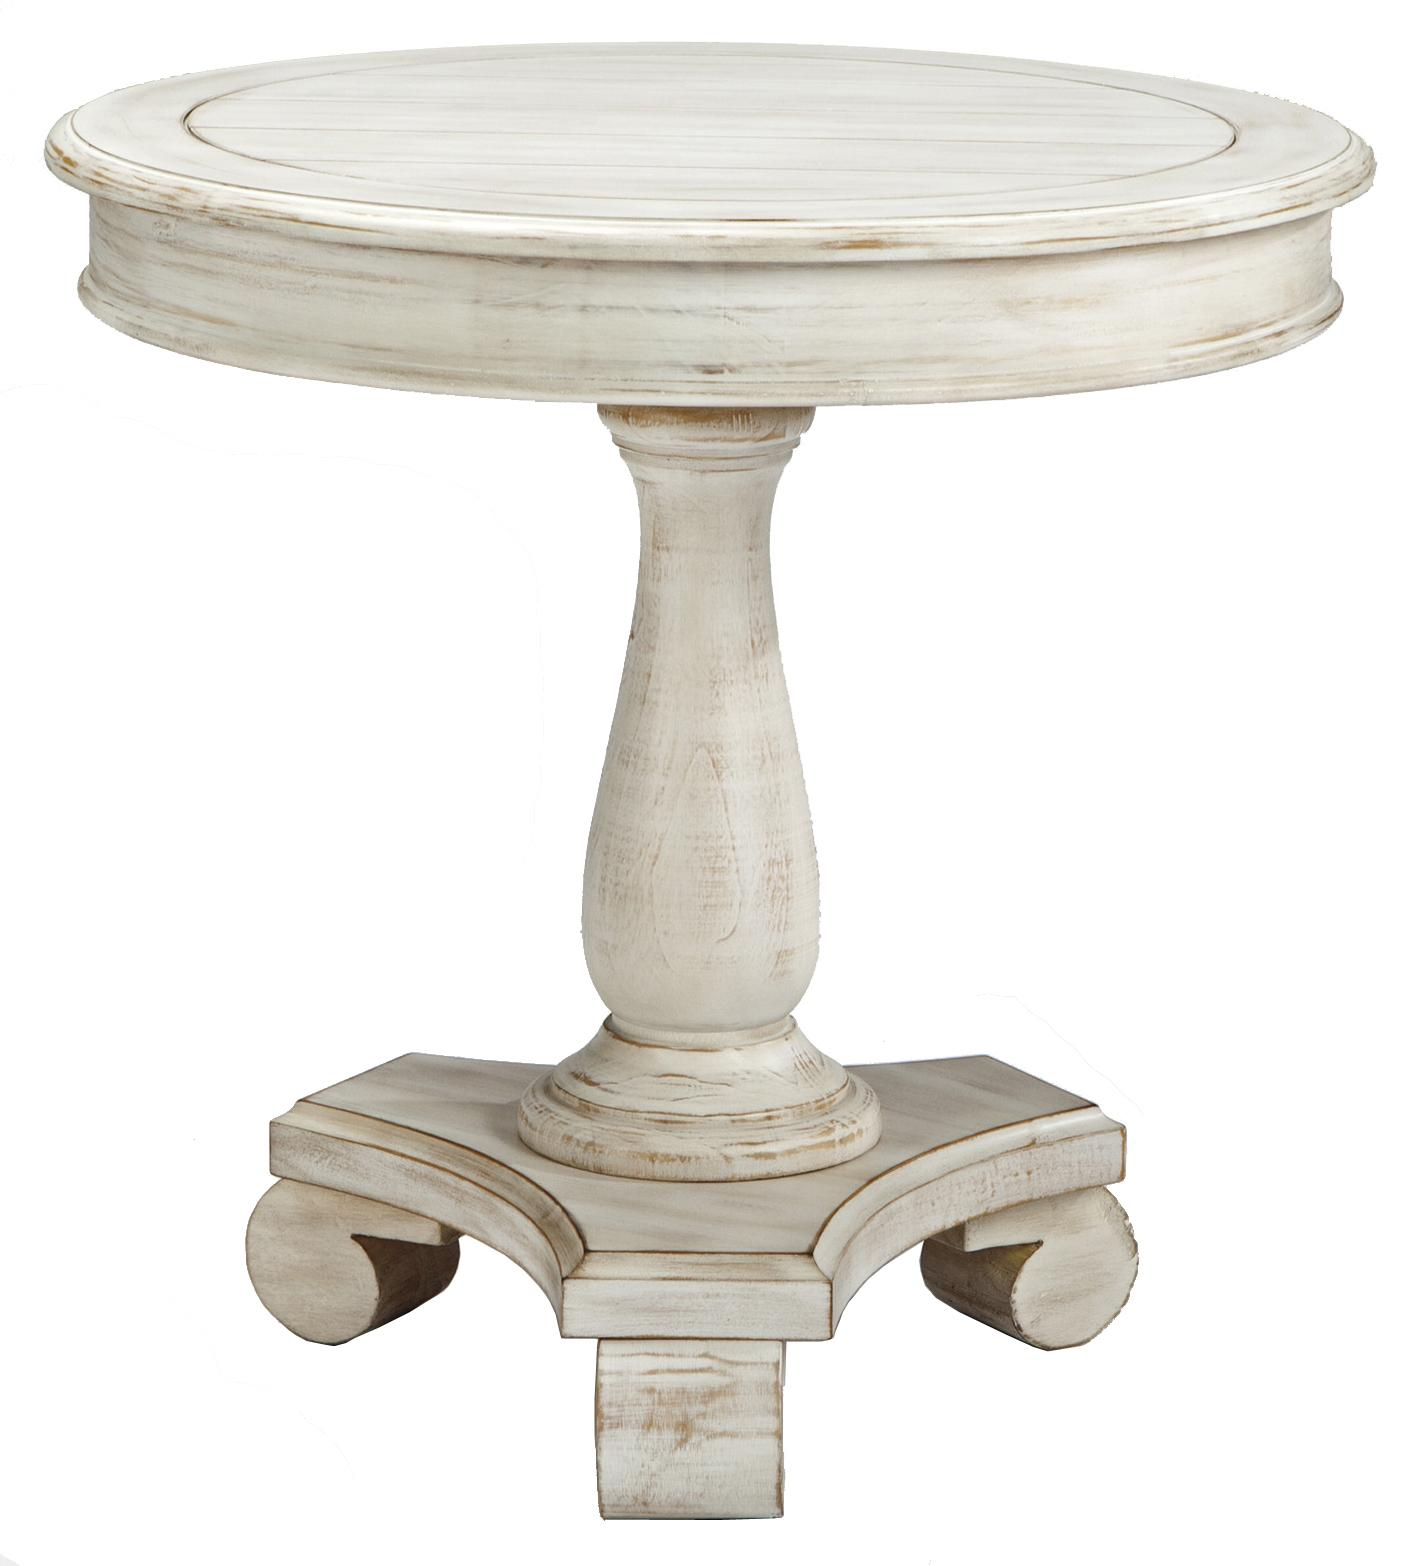 Signature Design By Ashley Mirimyn Round Accent Table   Item Number:  T505 106